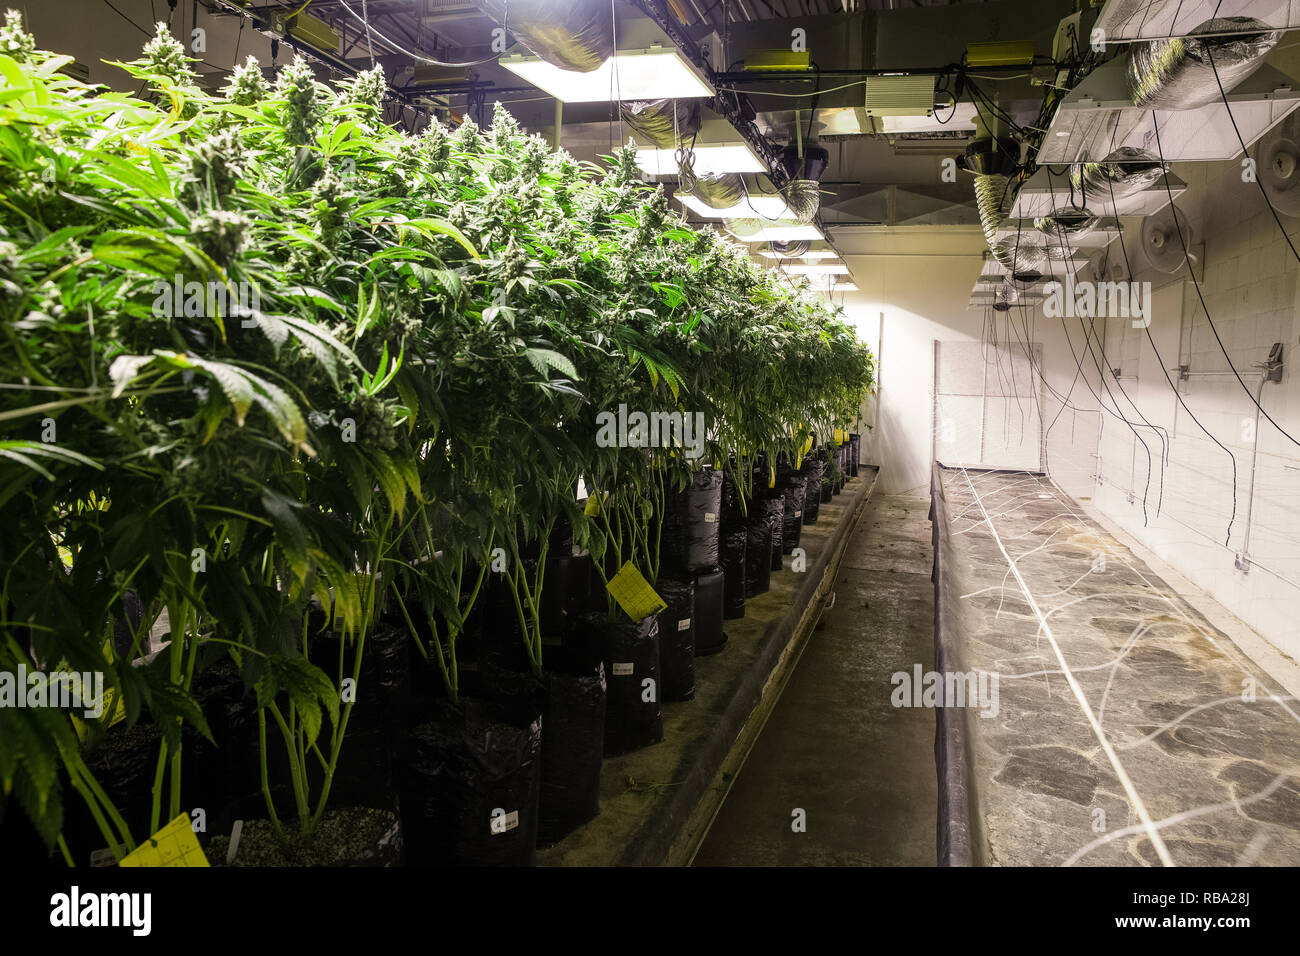 Chambre de culture de marijuana cannabis légal série - La culture de ...